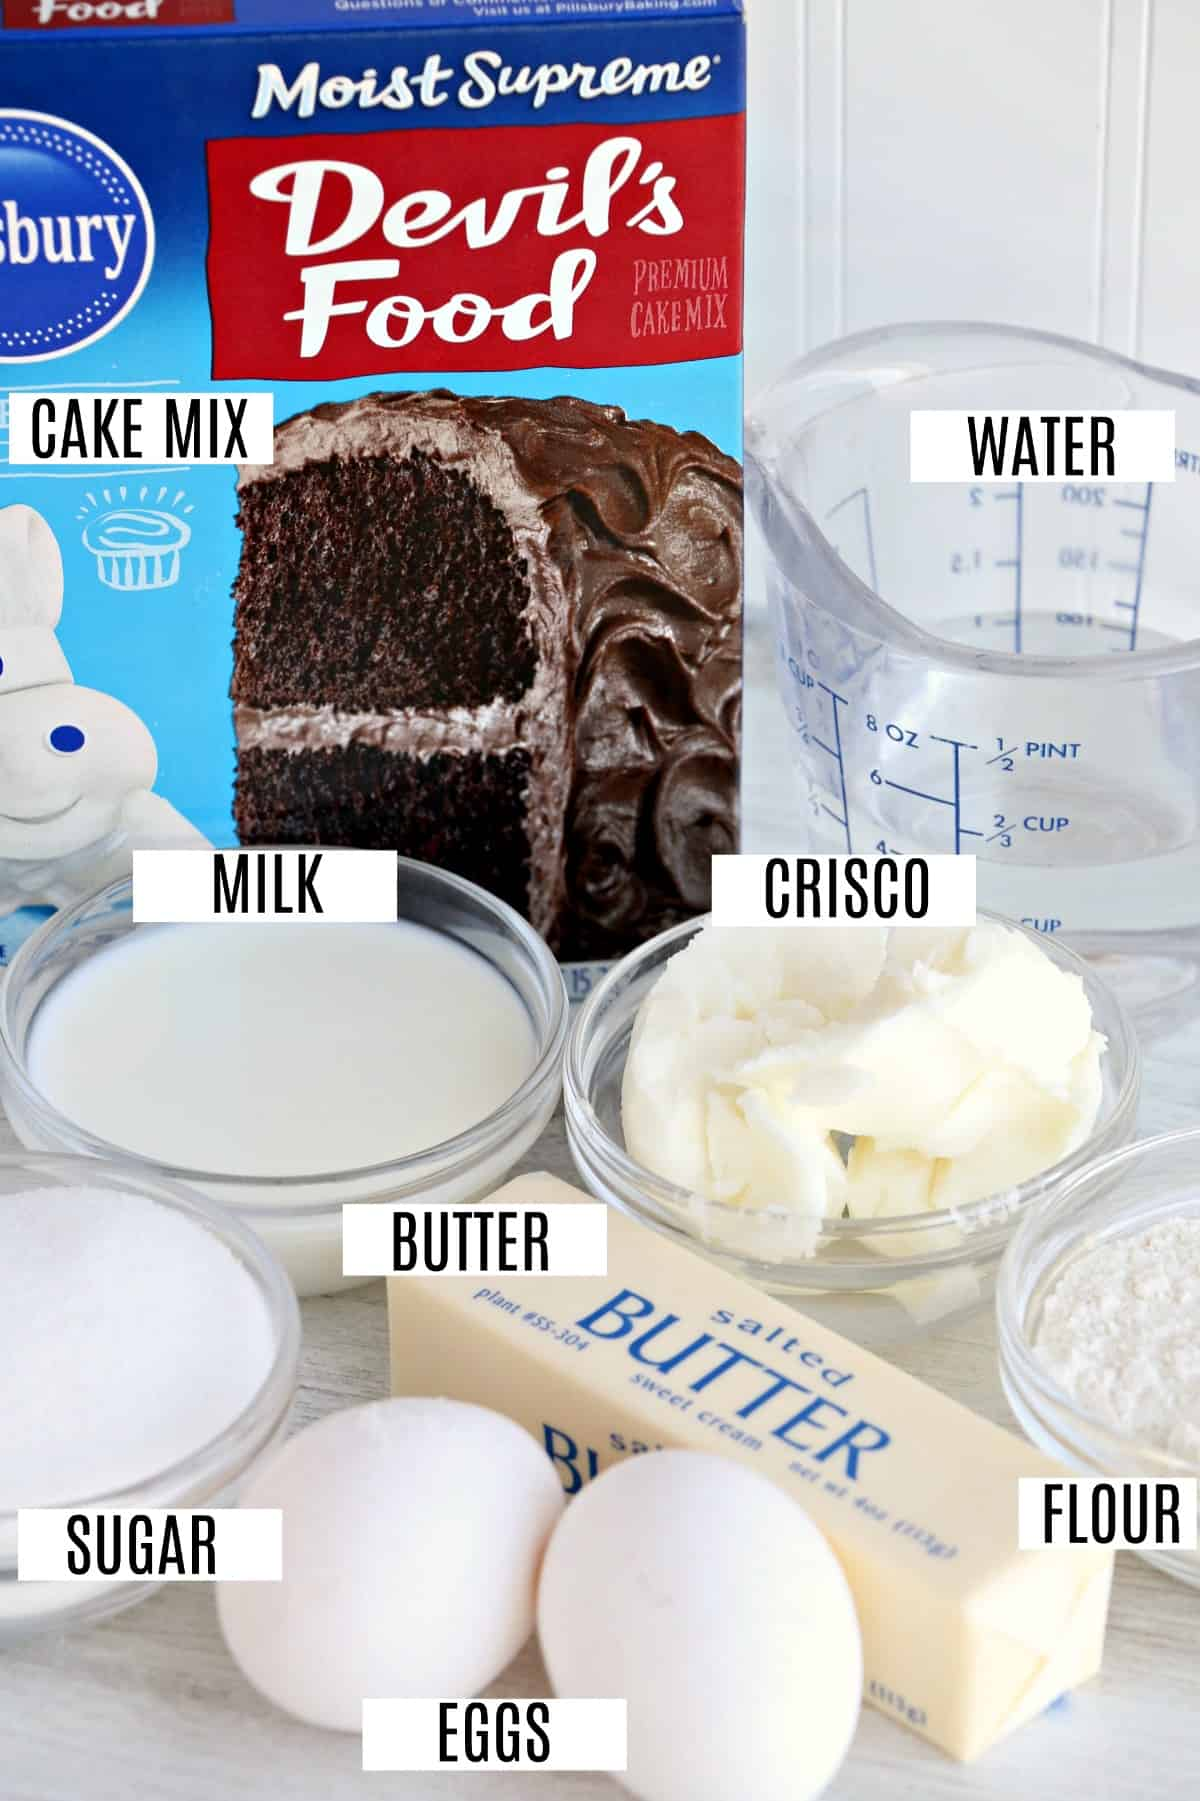 Ingredients to make chocolate whoopie pies including boxed cake mix.